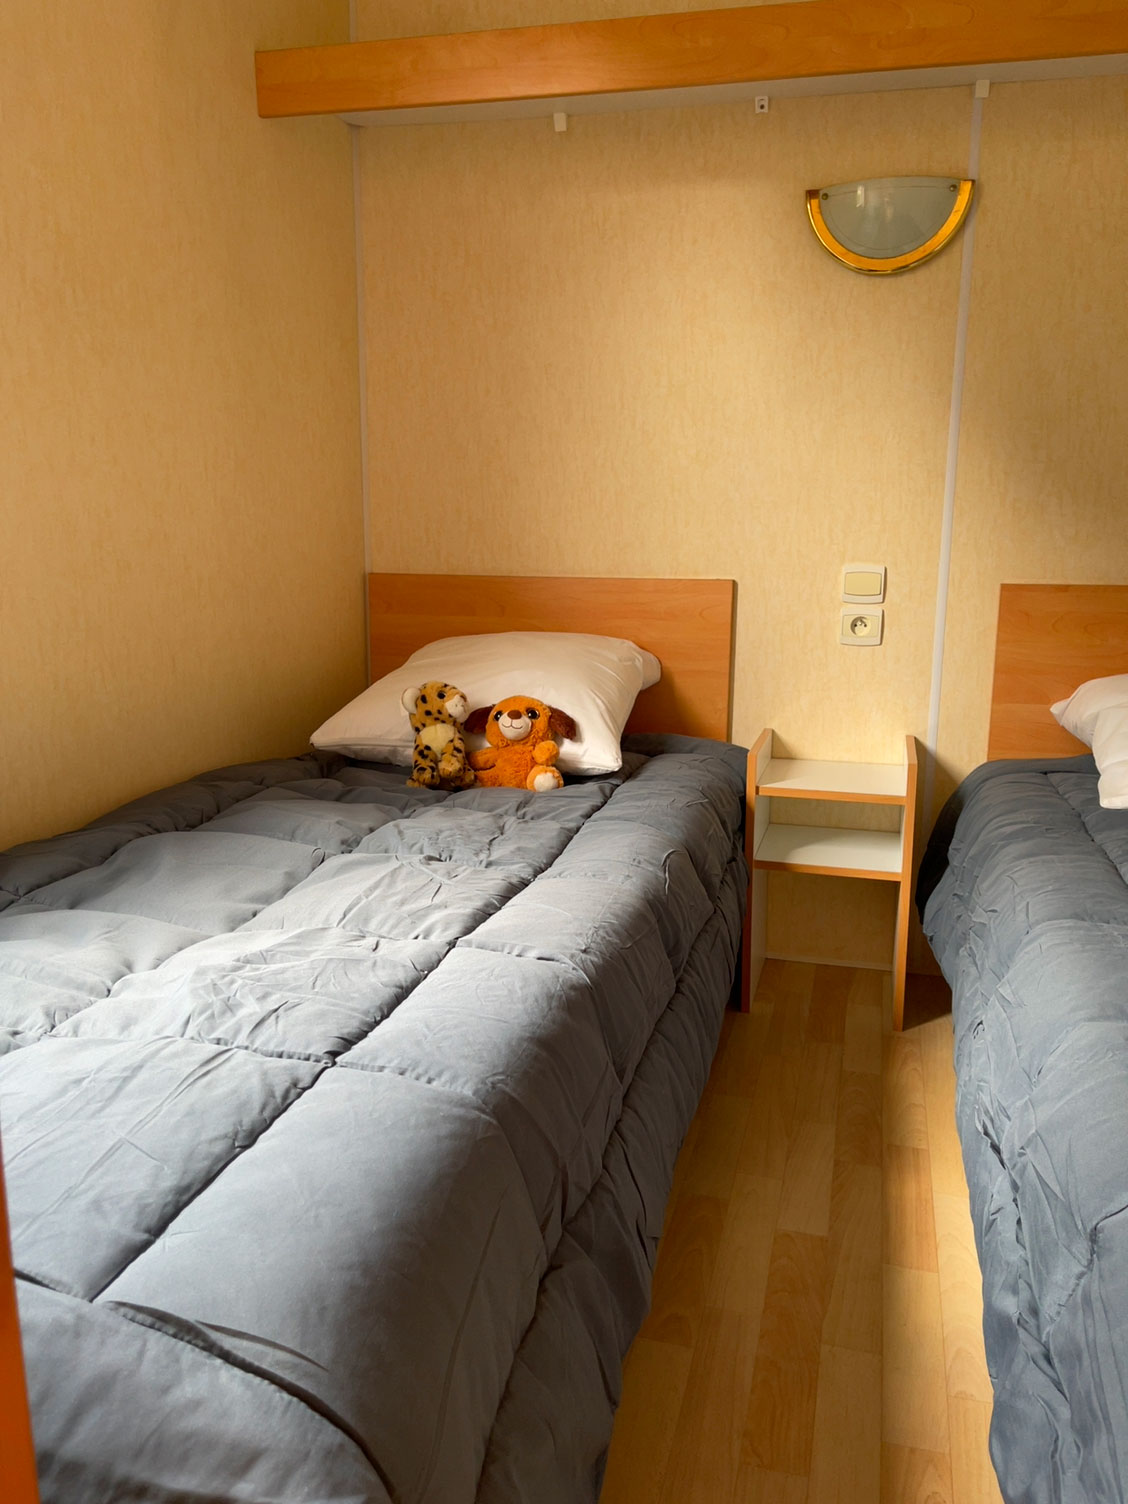 galerie-location-mobil-home-6-8-personnes-evasion-chambre-enfant-camping-moricq